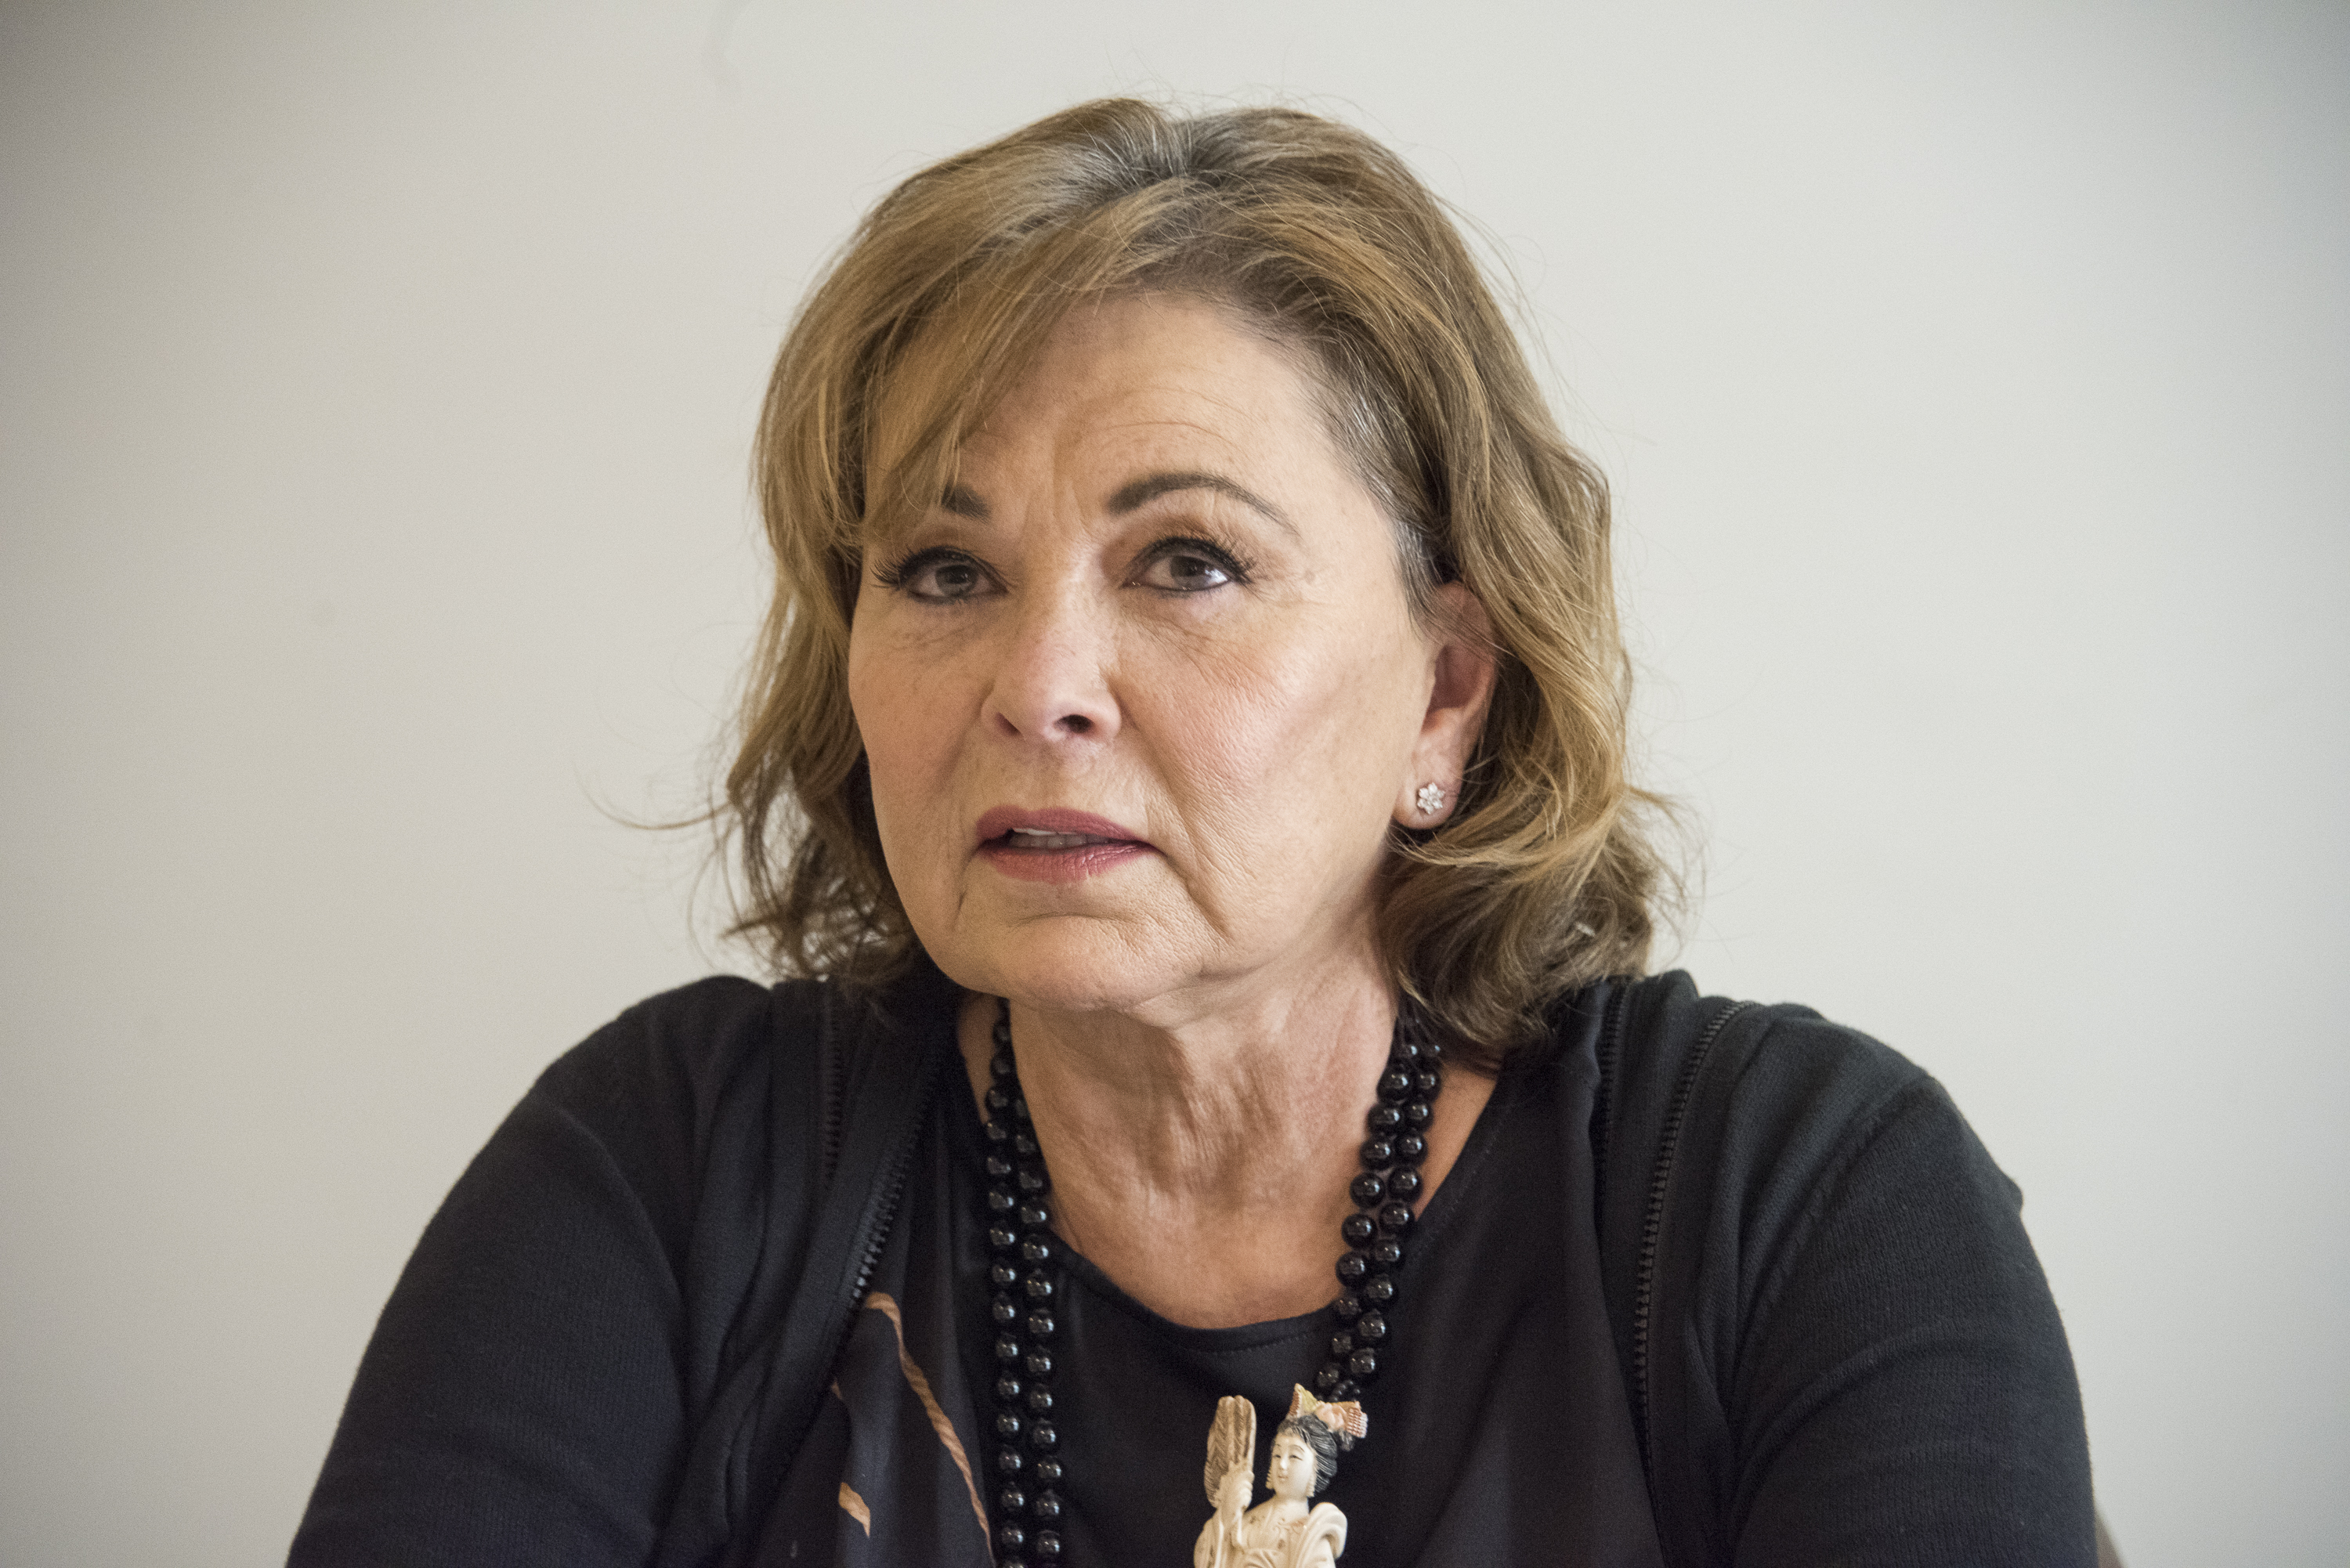 Roseanne Barr Considering TV Return After 'Roseanne' Cancellation ...